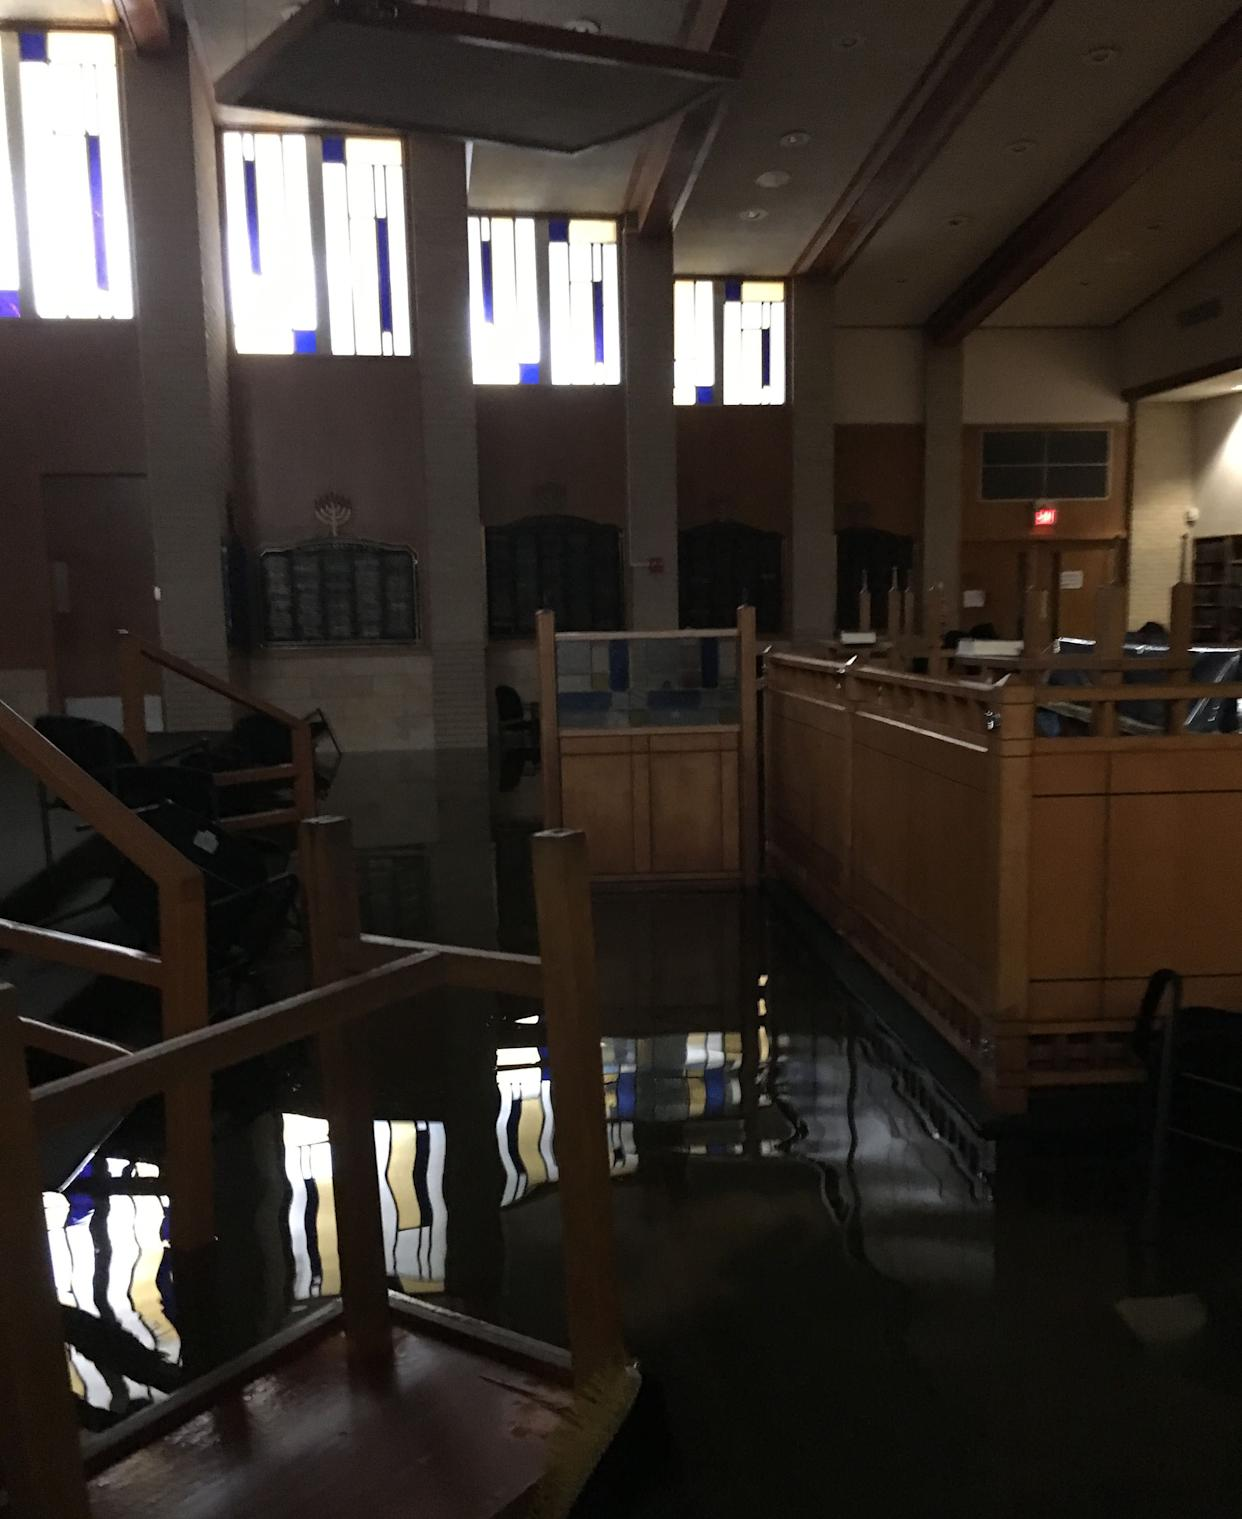 The main sanctuary in southwest Houston was flooded after the storm. (Photo: Robert Levy)